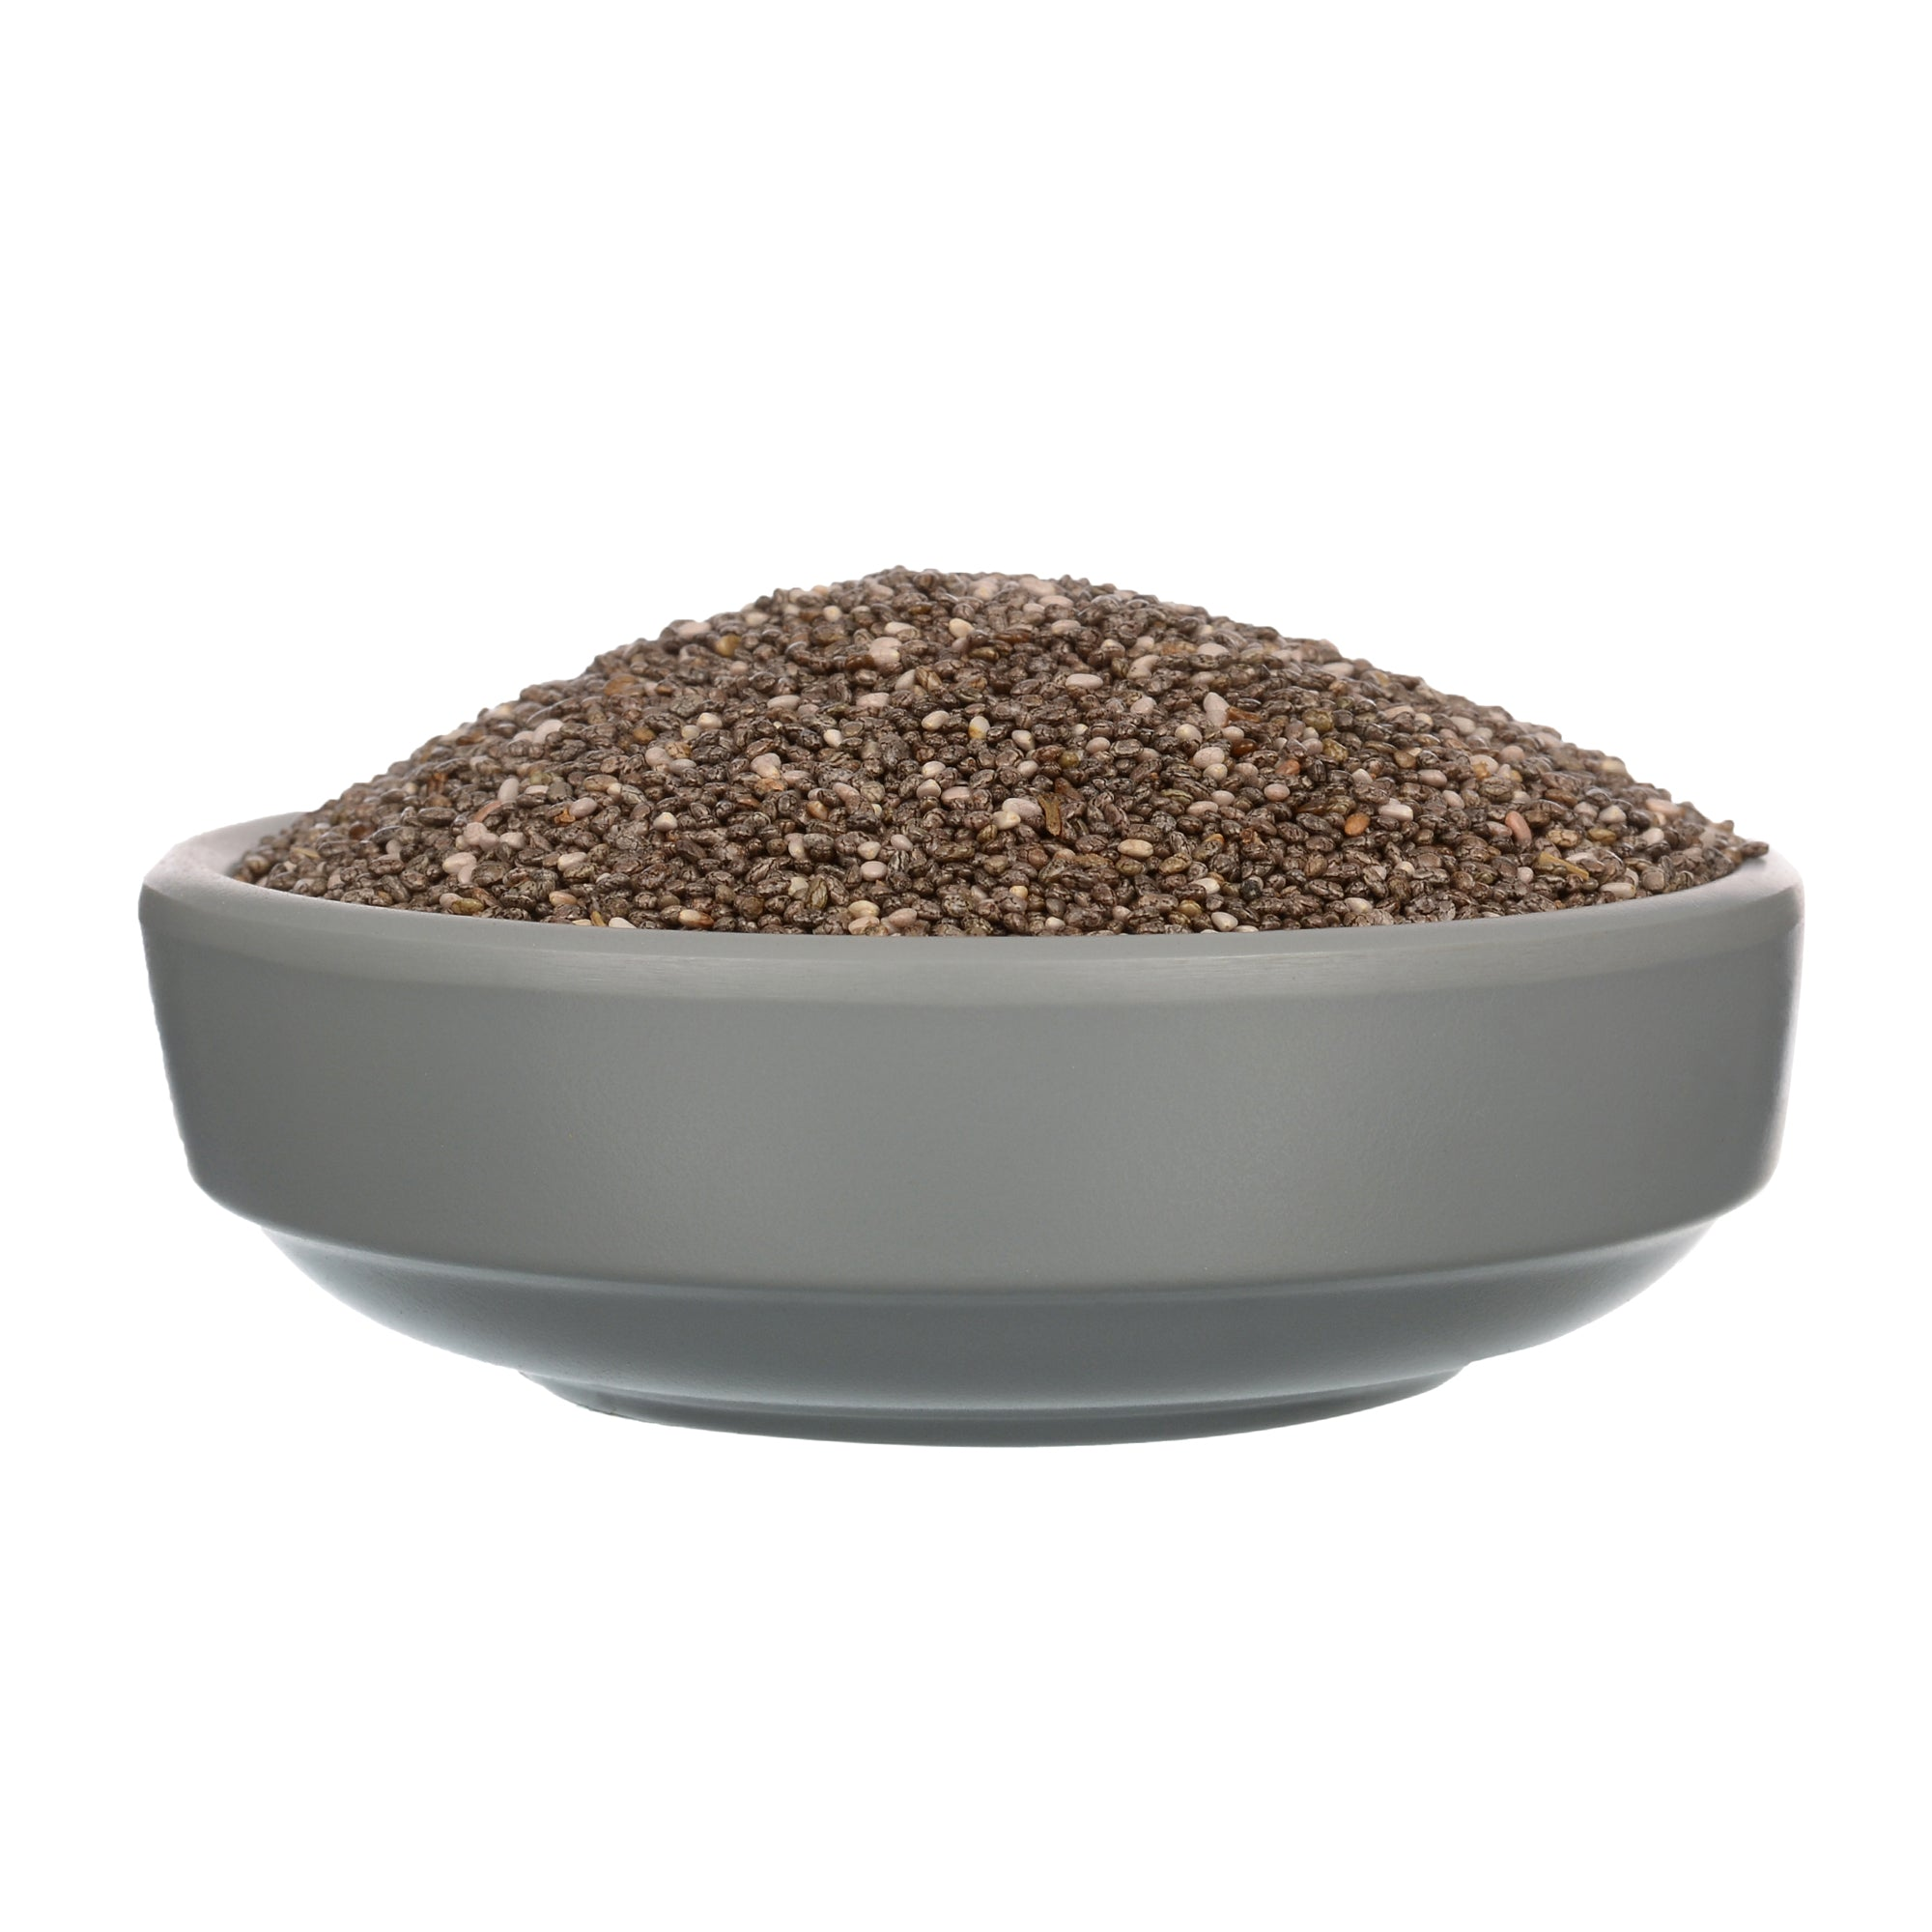 Flyberry Chia Seeds